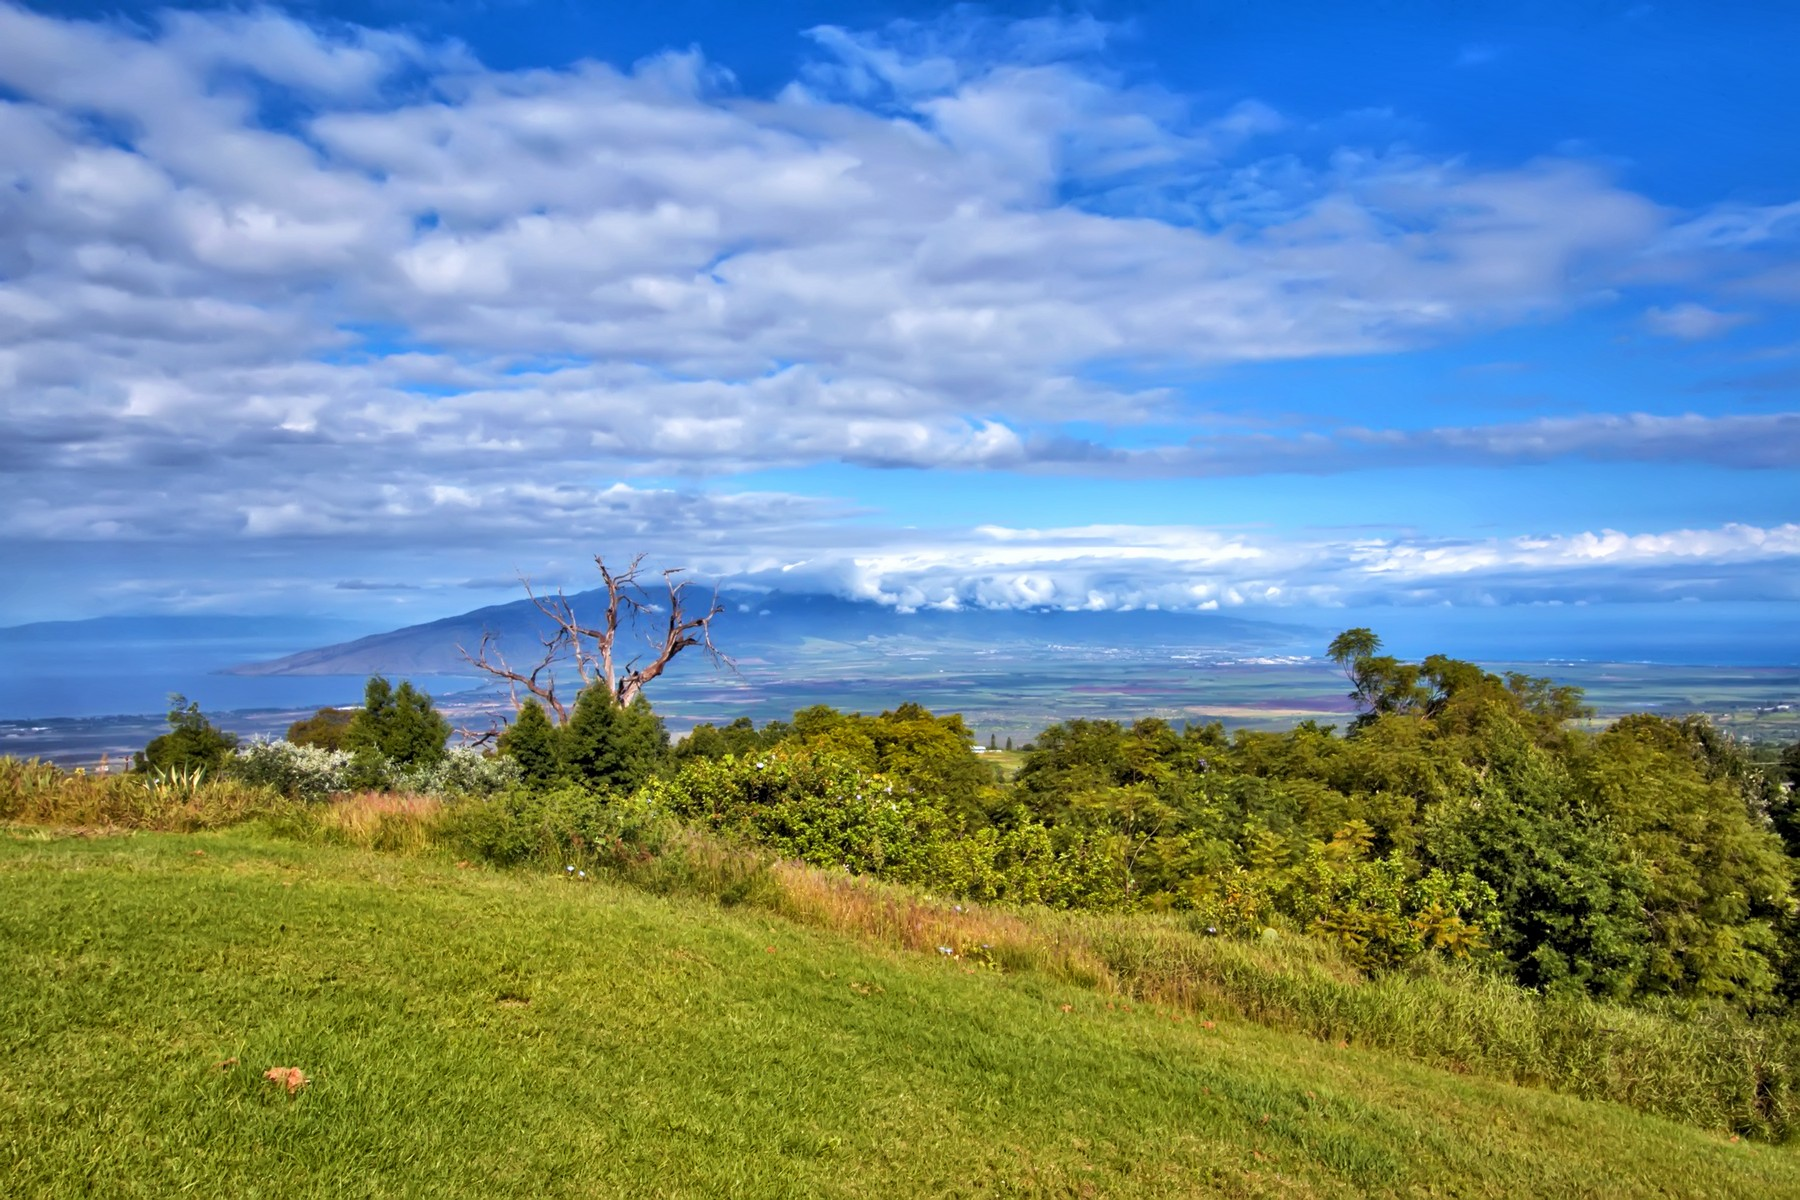 Property For Sale at Embrace Maui's Natural Beauty From 2.77 Acres On The Slopes of Haleakala